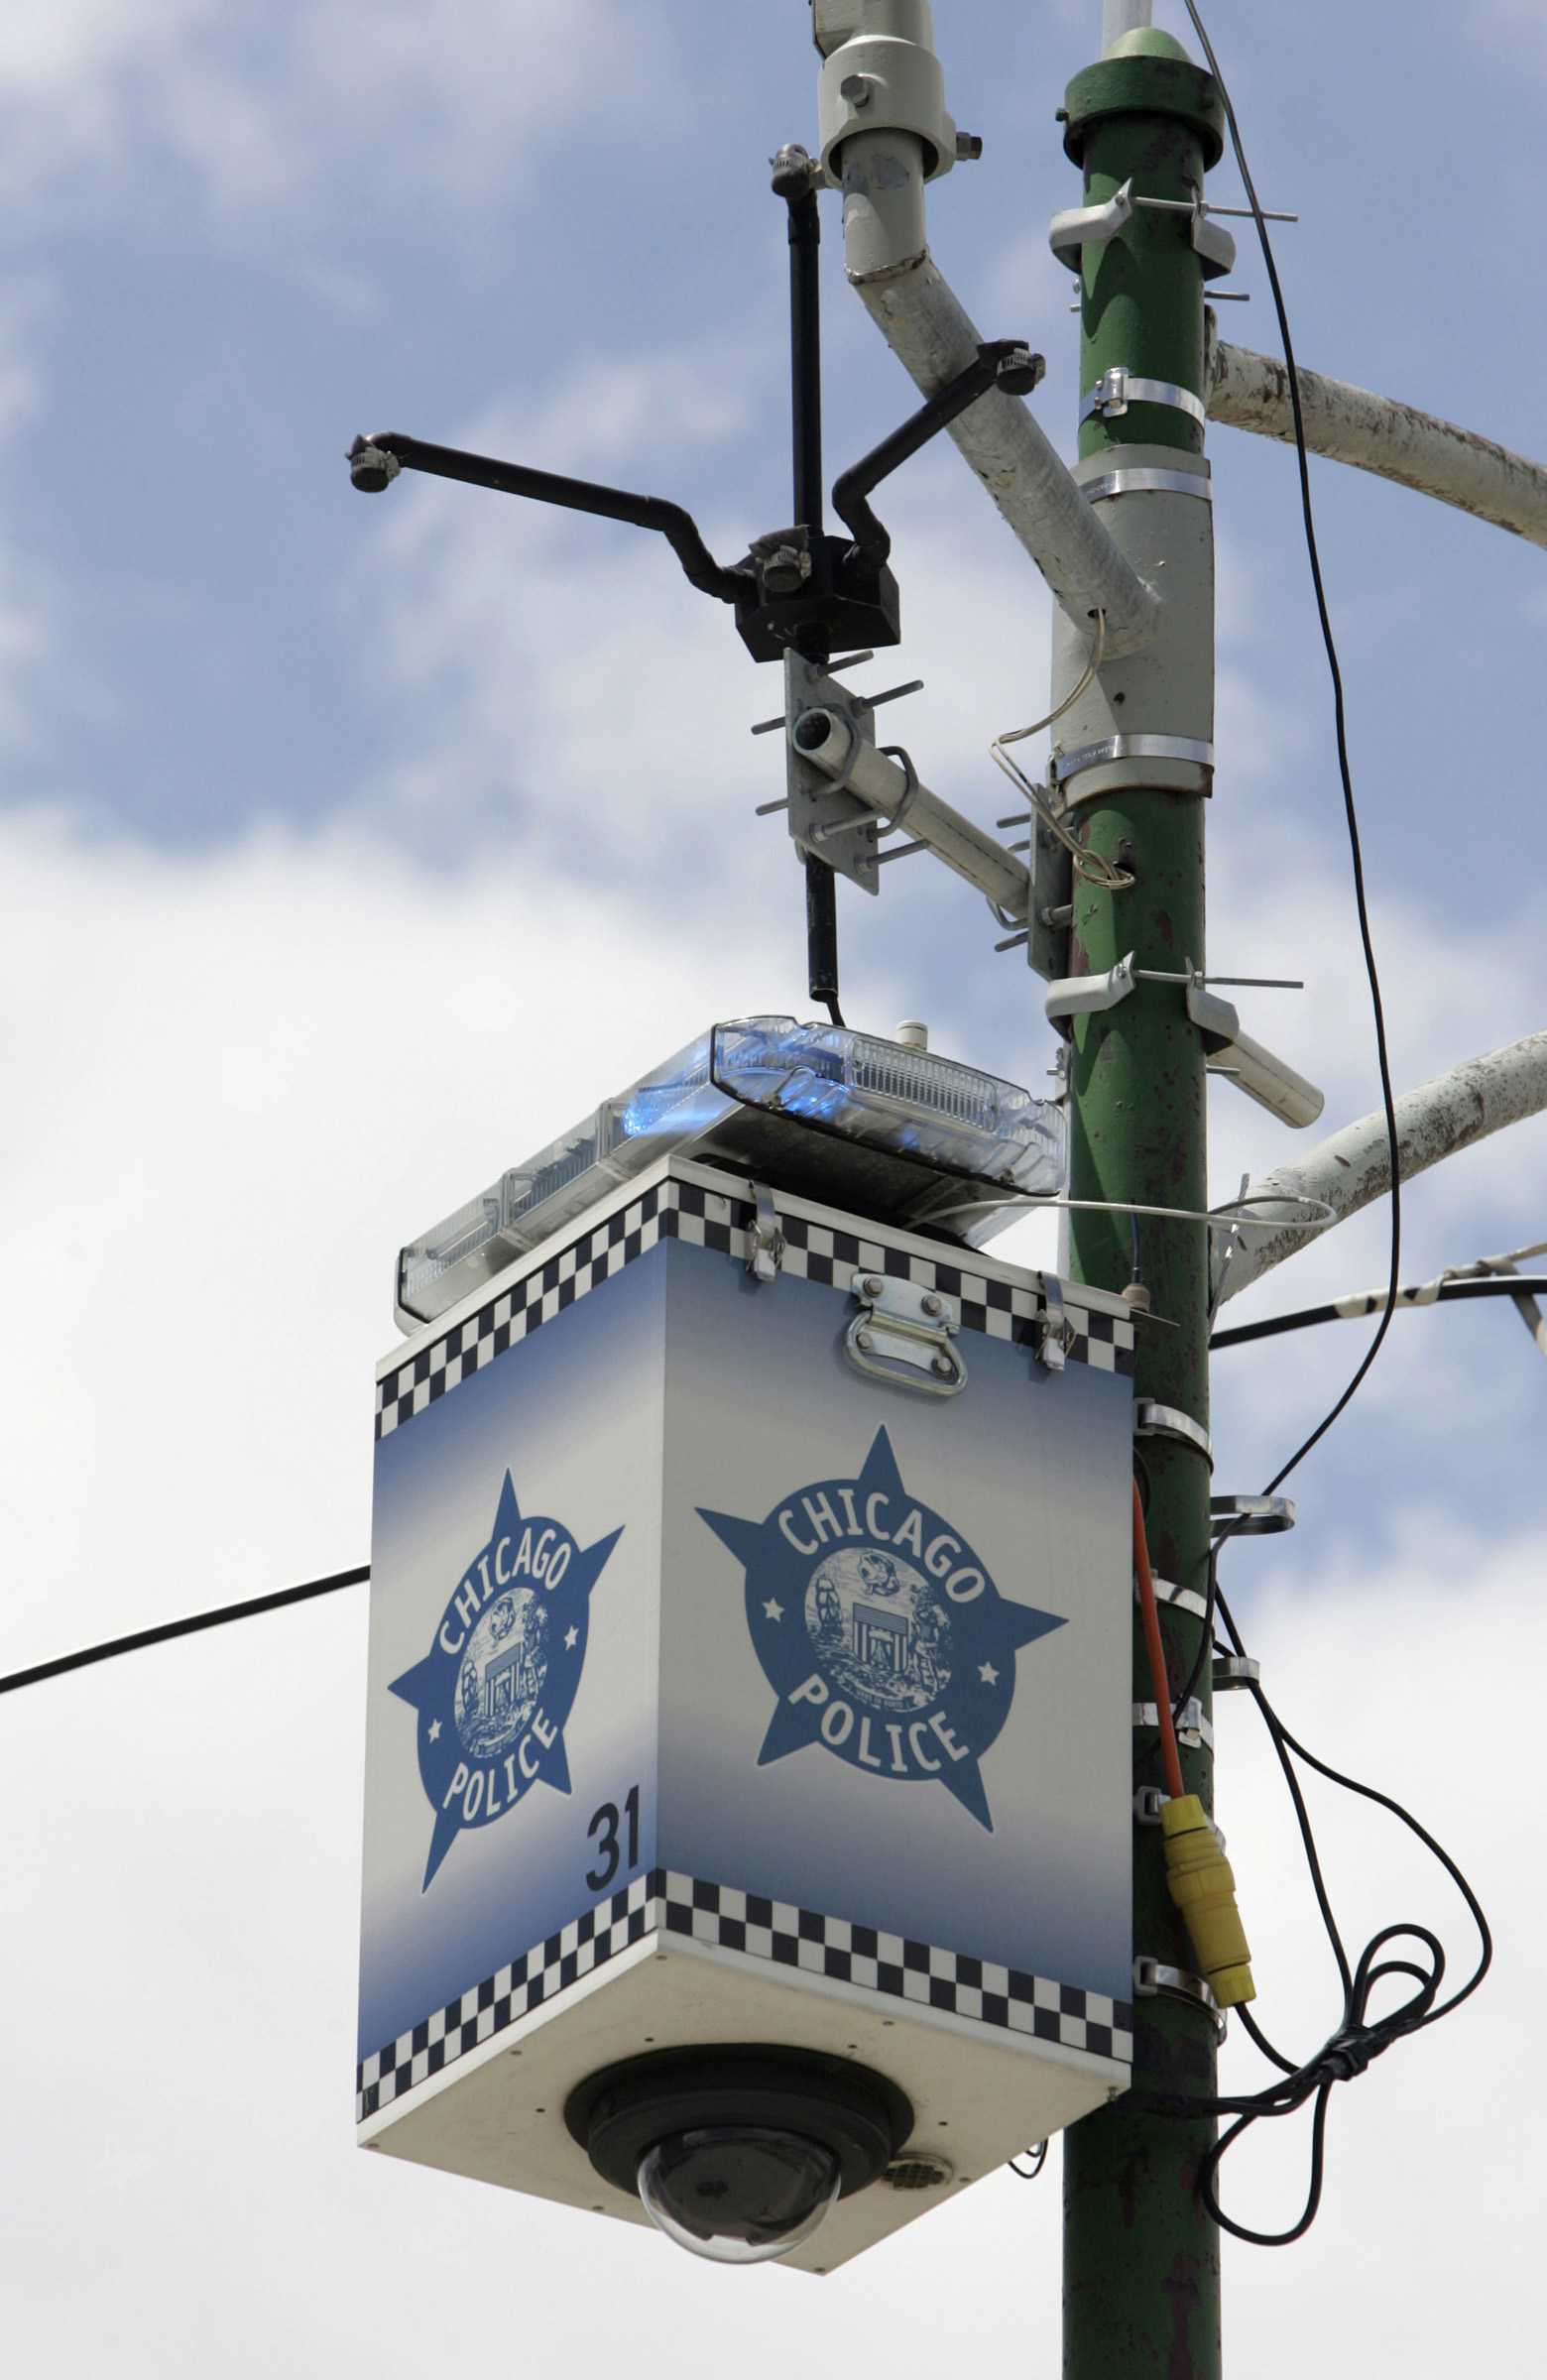 A Chicago Police Department surveillance camera mounted on a light pole in 2005.